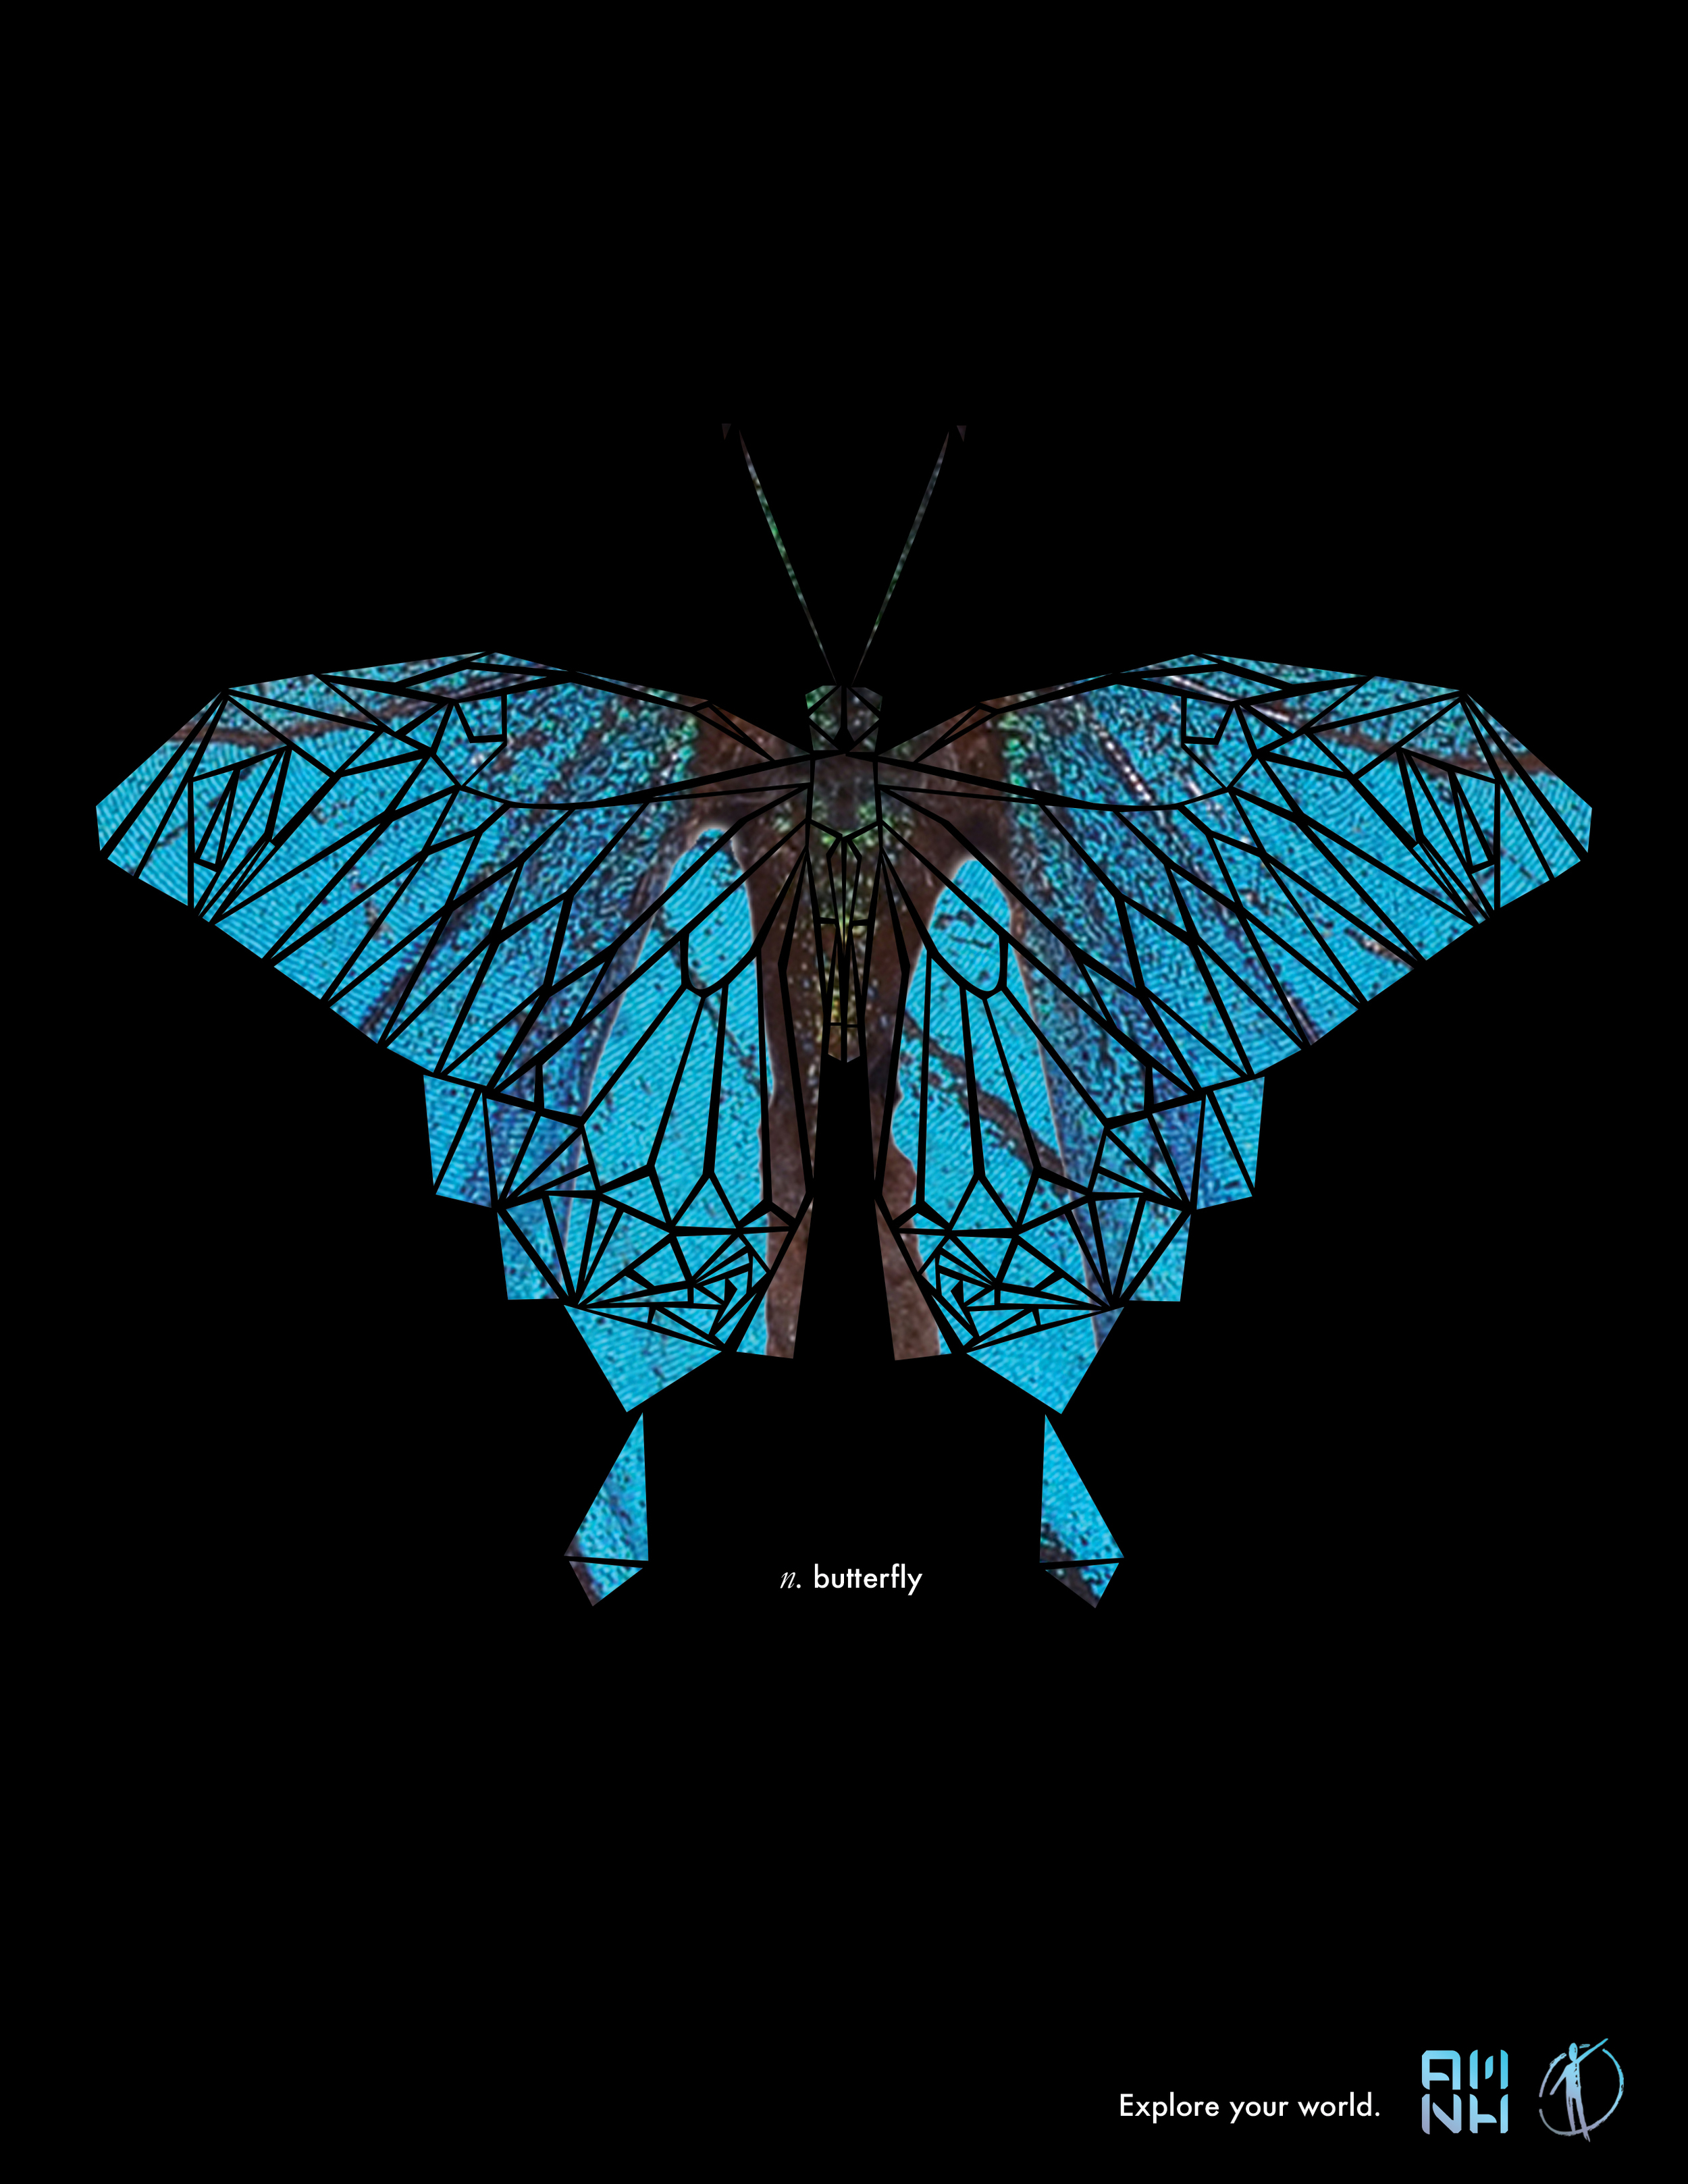 amnh_posters_v2_butterfly.jpg